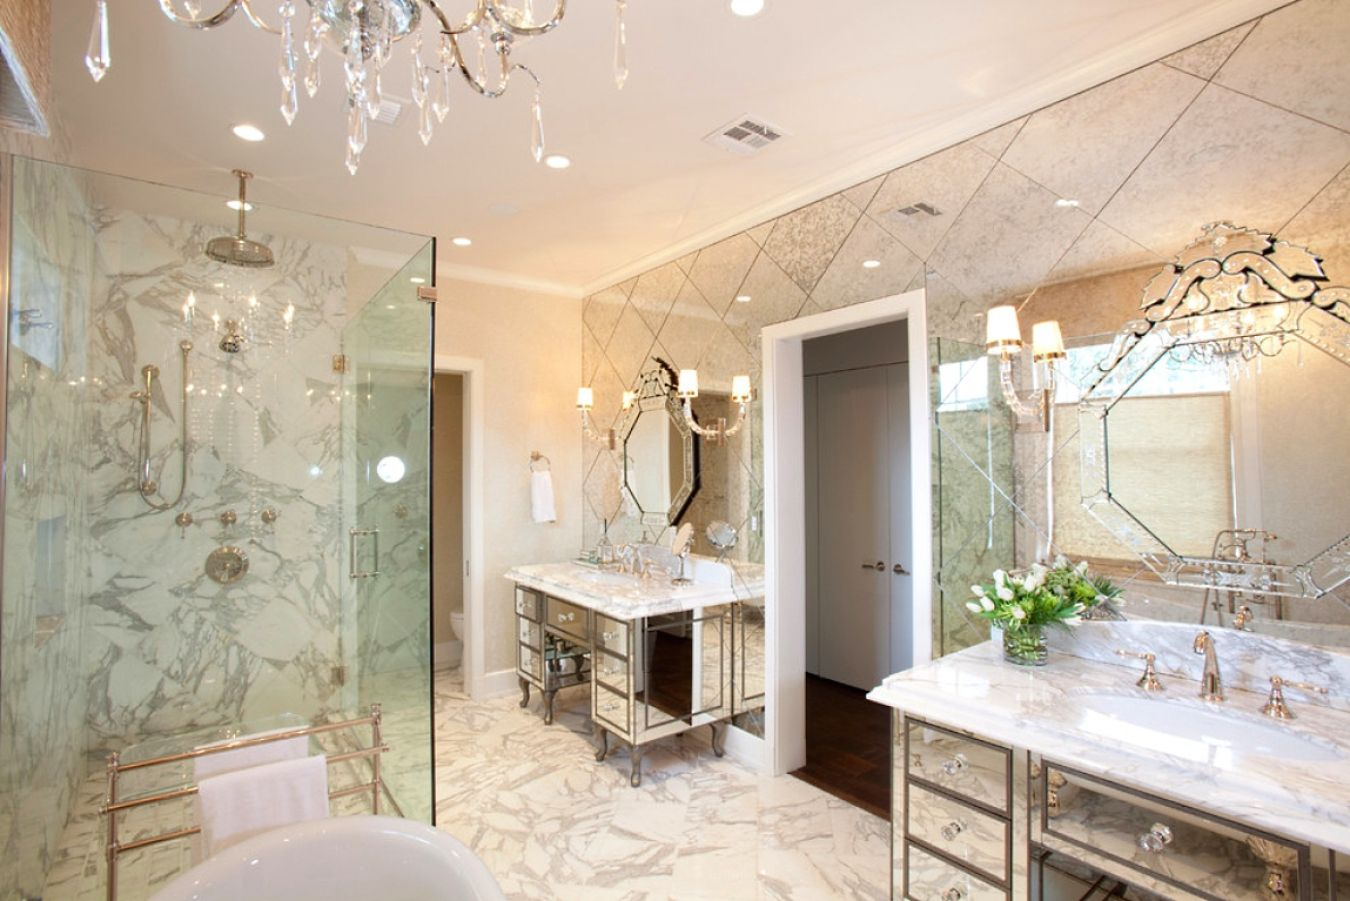 Mirror Tiles Ideas for Modern Interior Design. Bathroom and boudoir in one